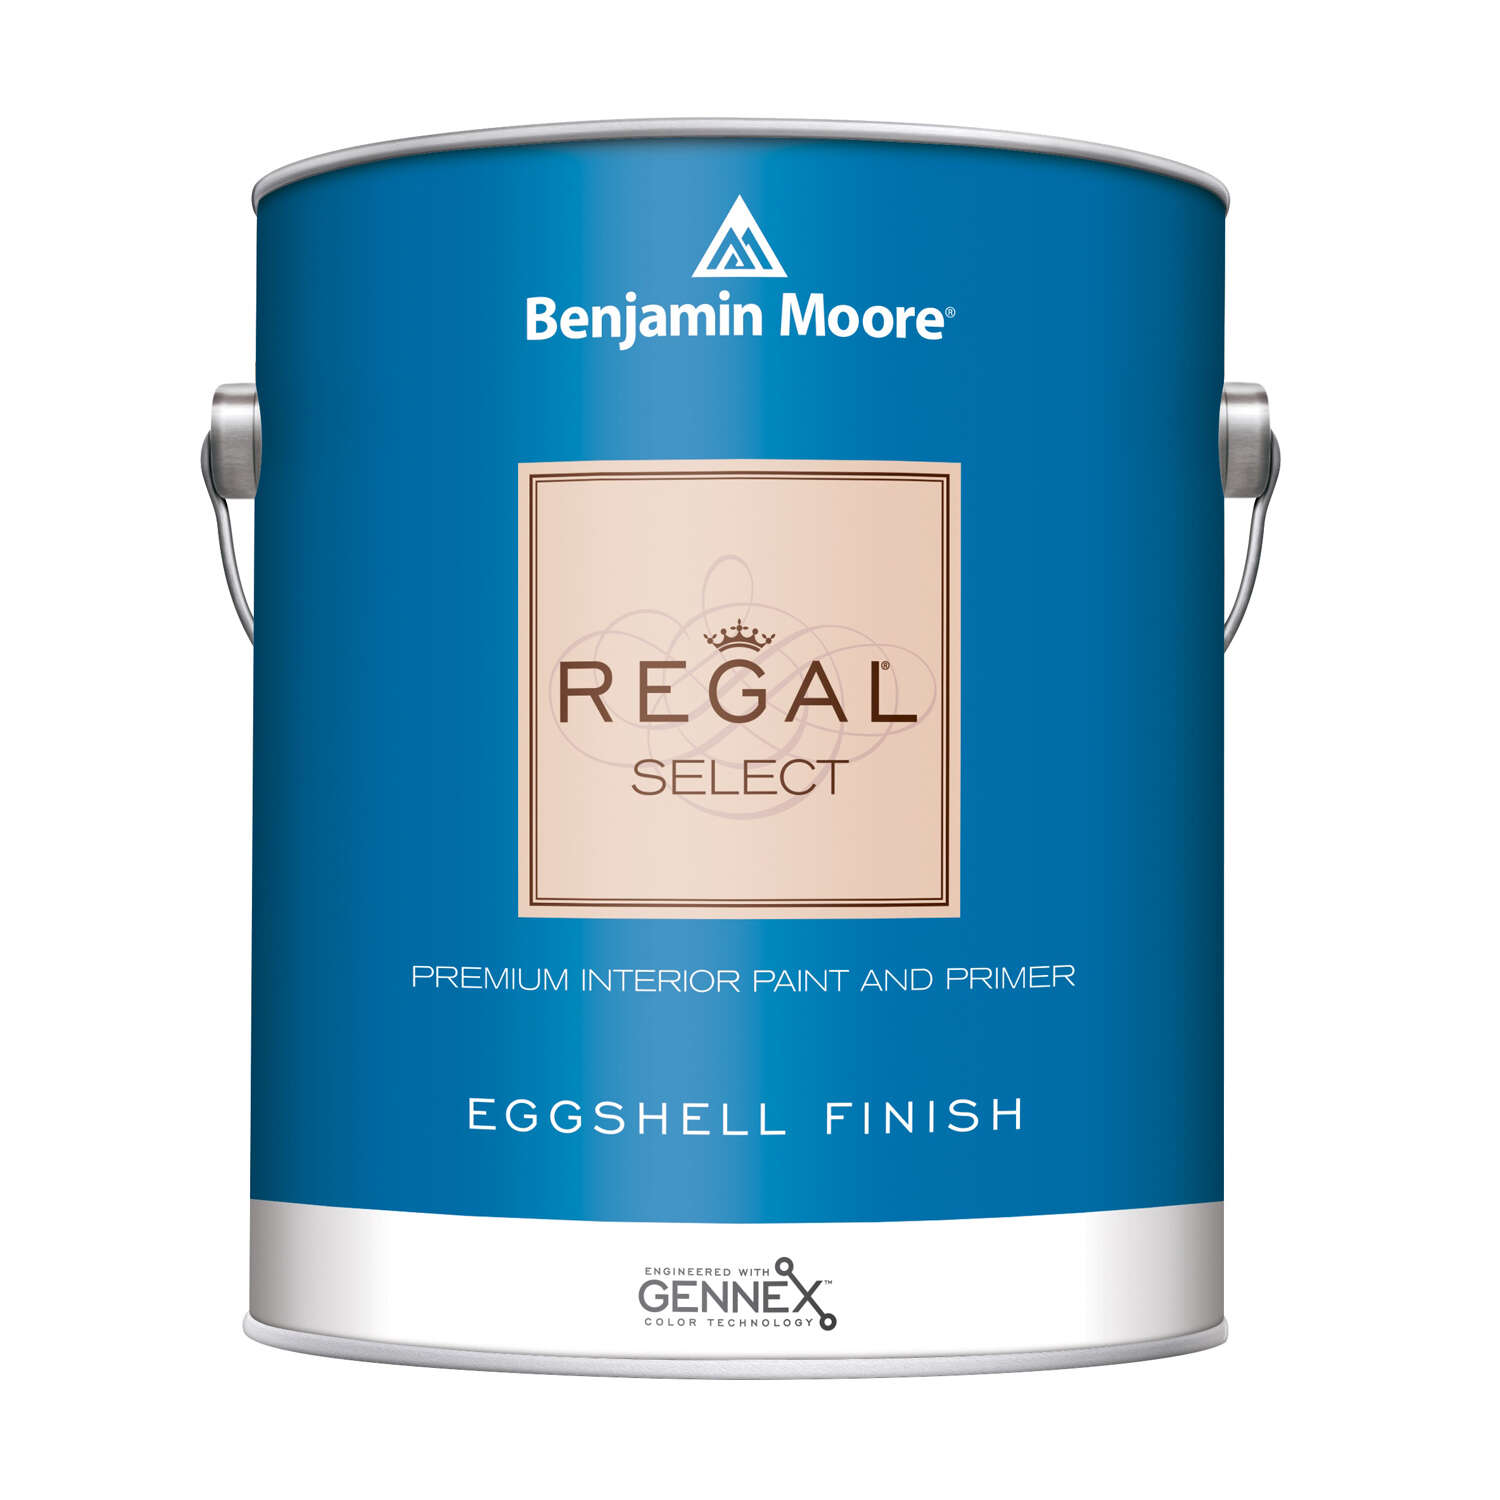 Benjamin Moore Regal Eggshell Base 3 Paint Interior 1 gal.